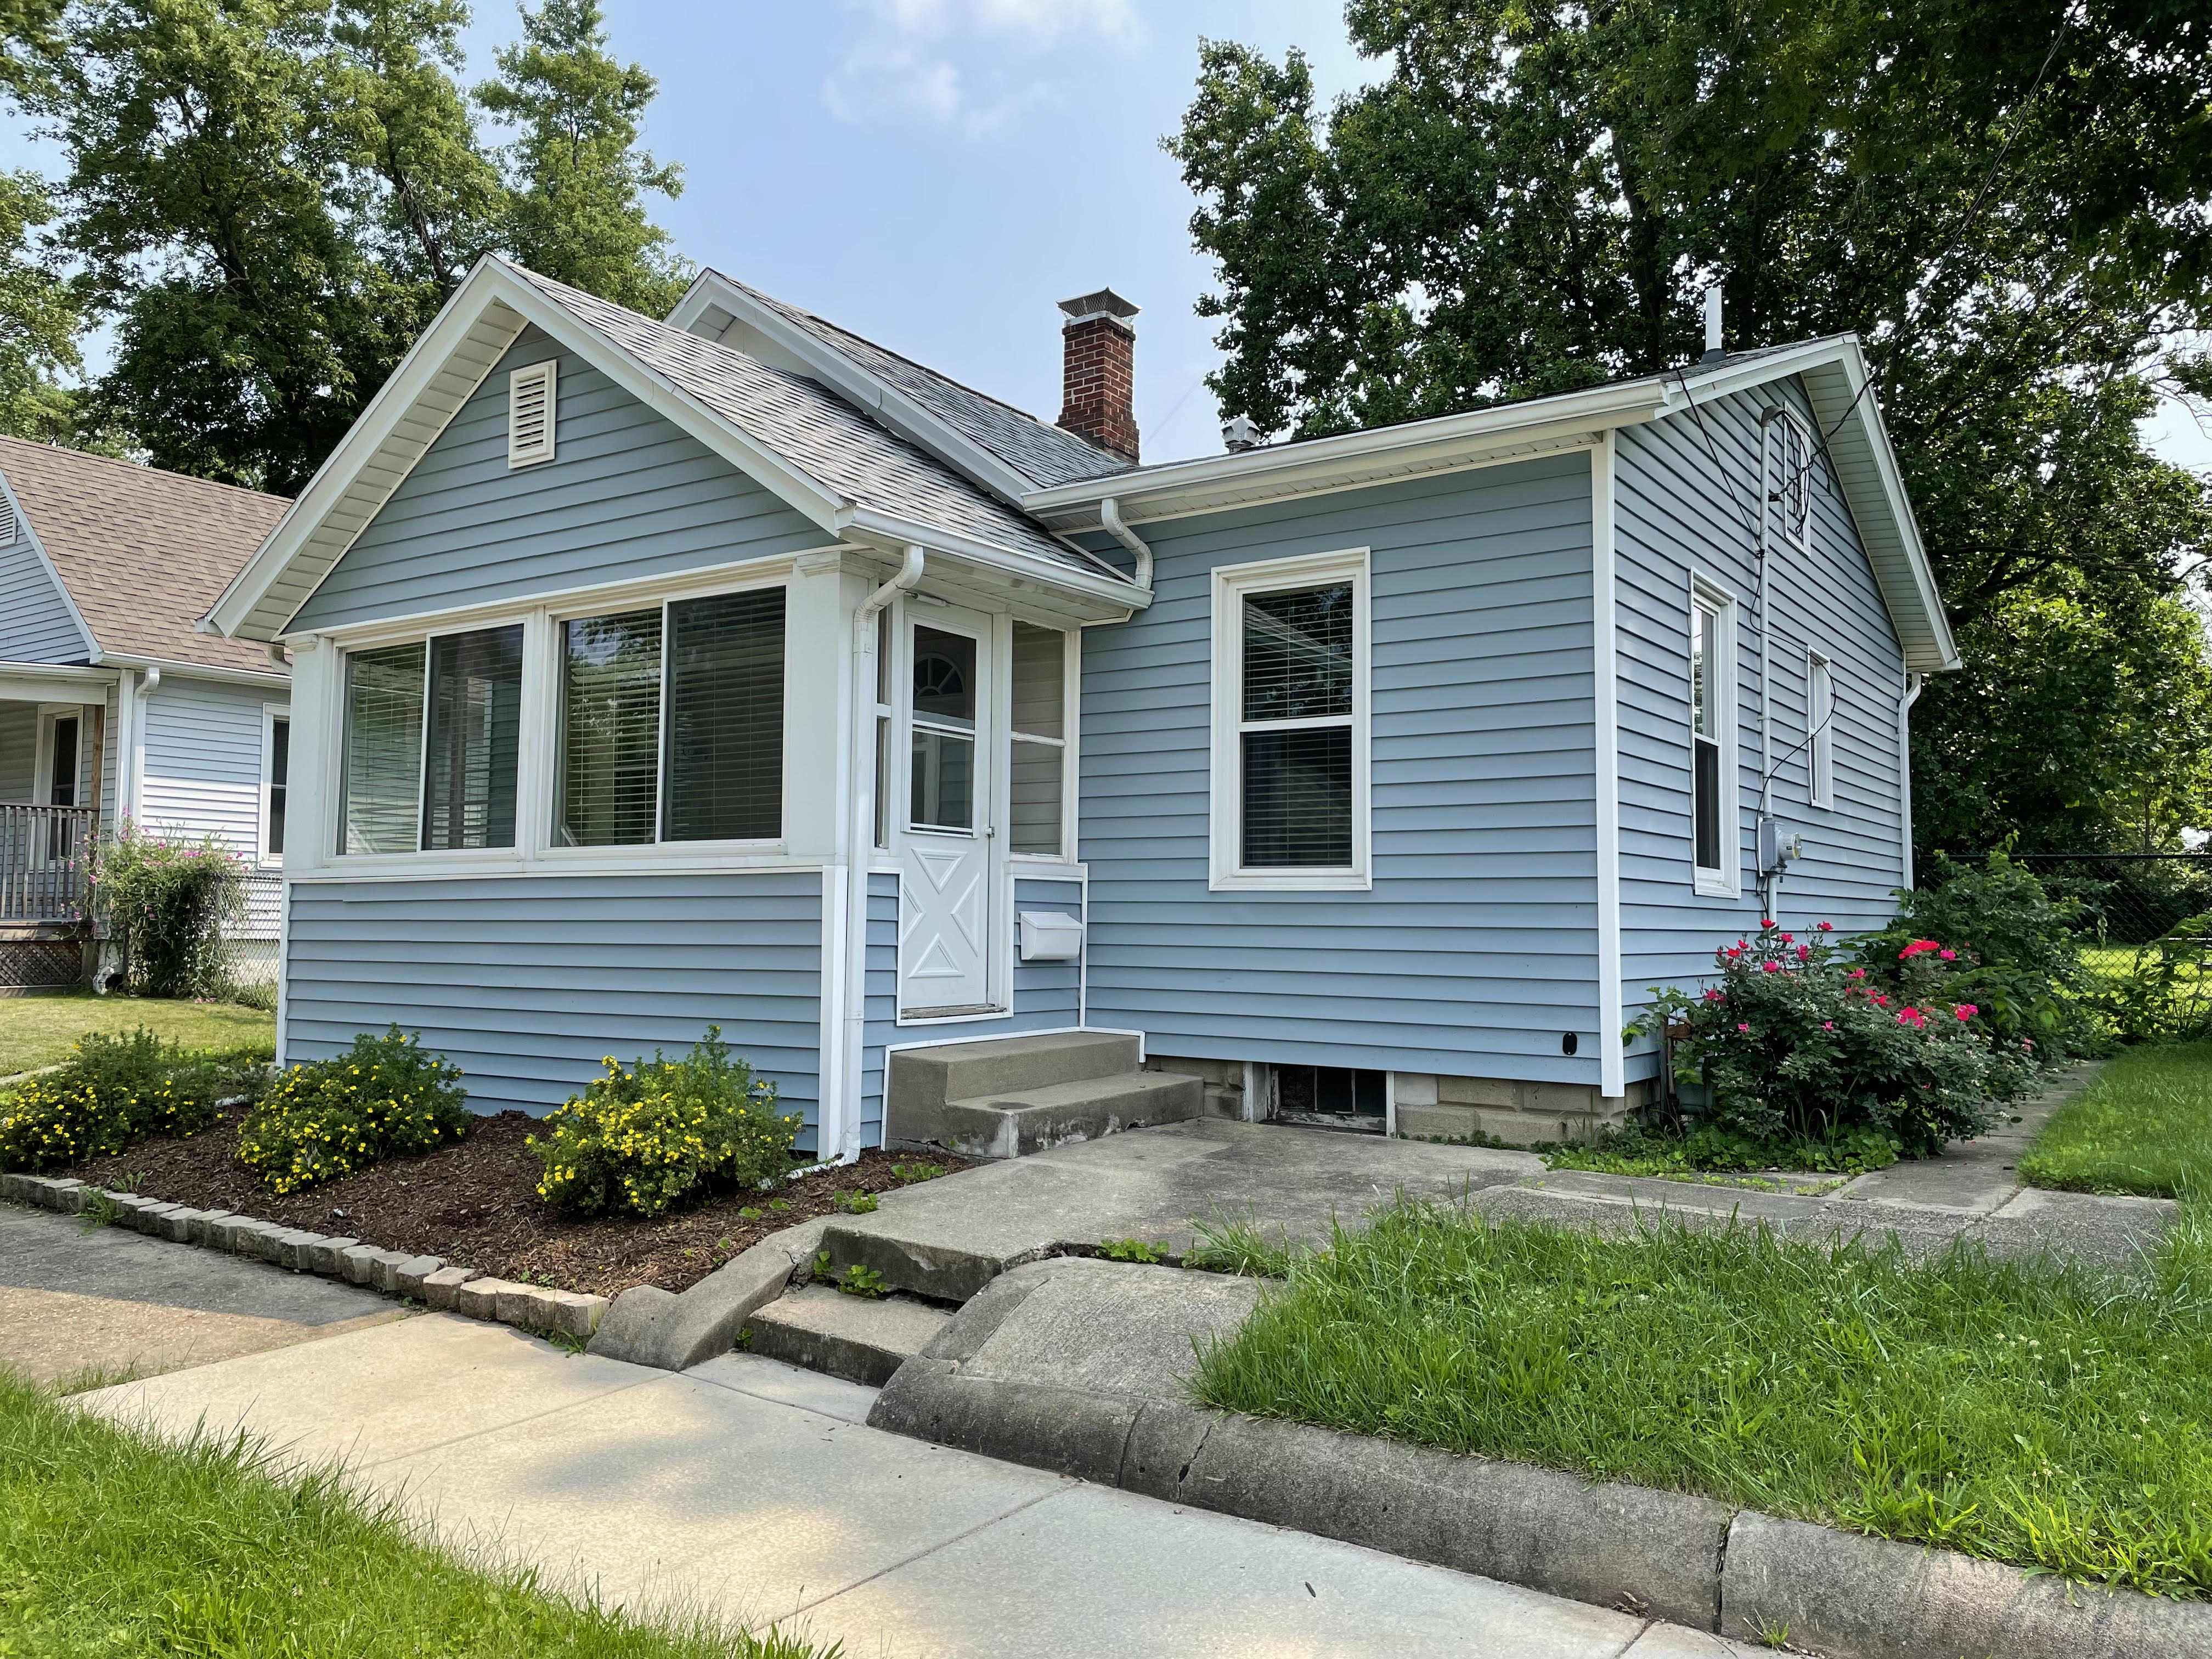 1109 N. Western Ave, Bloomington, IL 61701- SOLD!